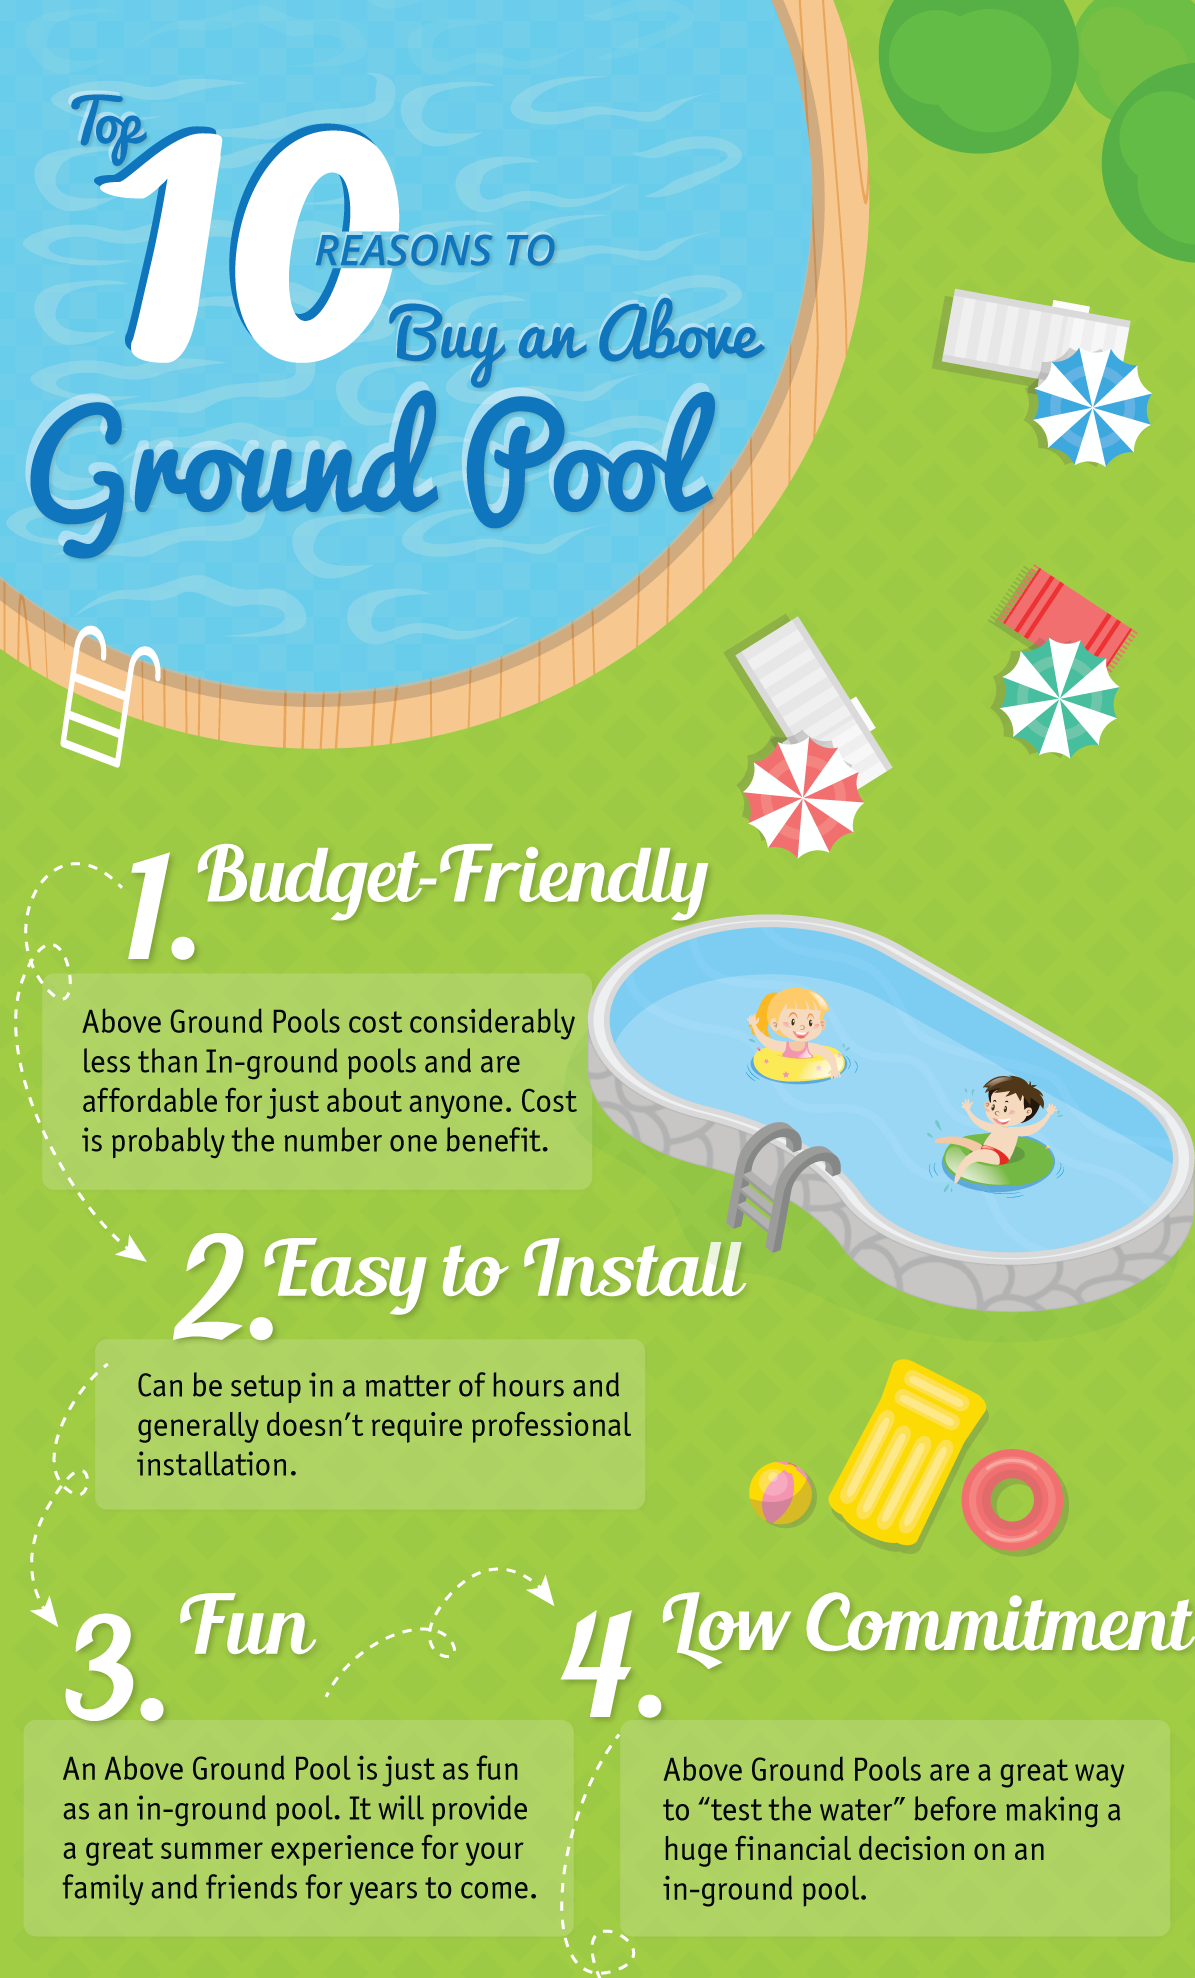 Top 10 reasons to buy an above ground pool infographic for Buying an above ground pool guide